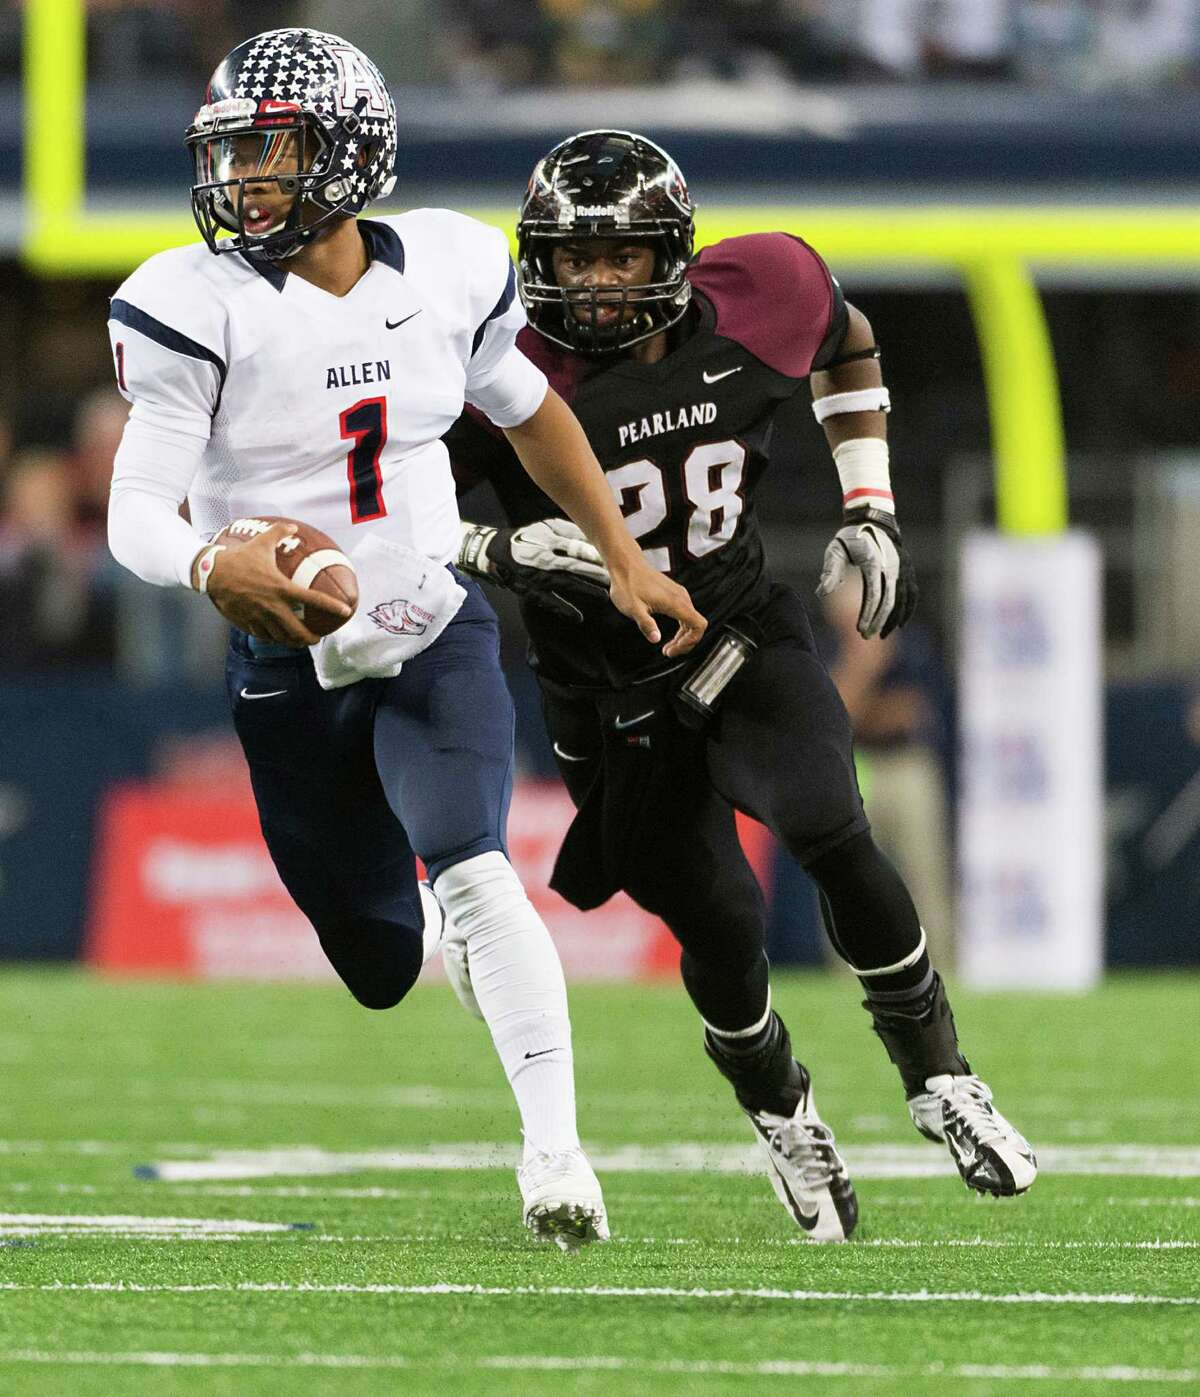 According to his Twitter account, QB Kyler Murray, who won three state titles at Allen, is headed to Texas A&M after all.